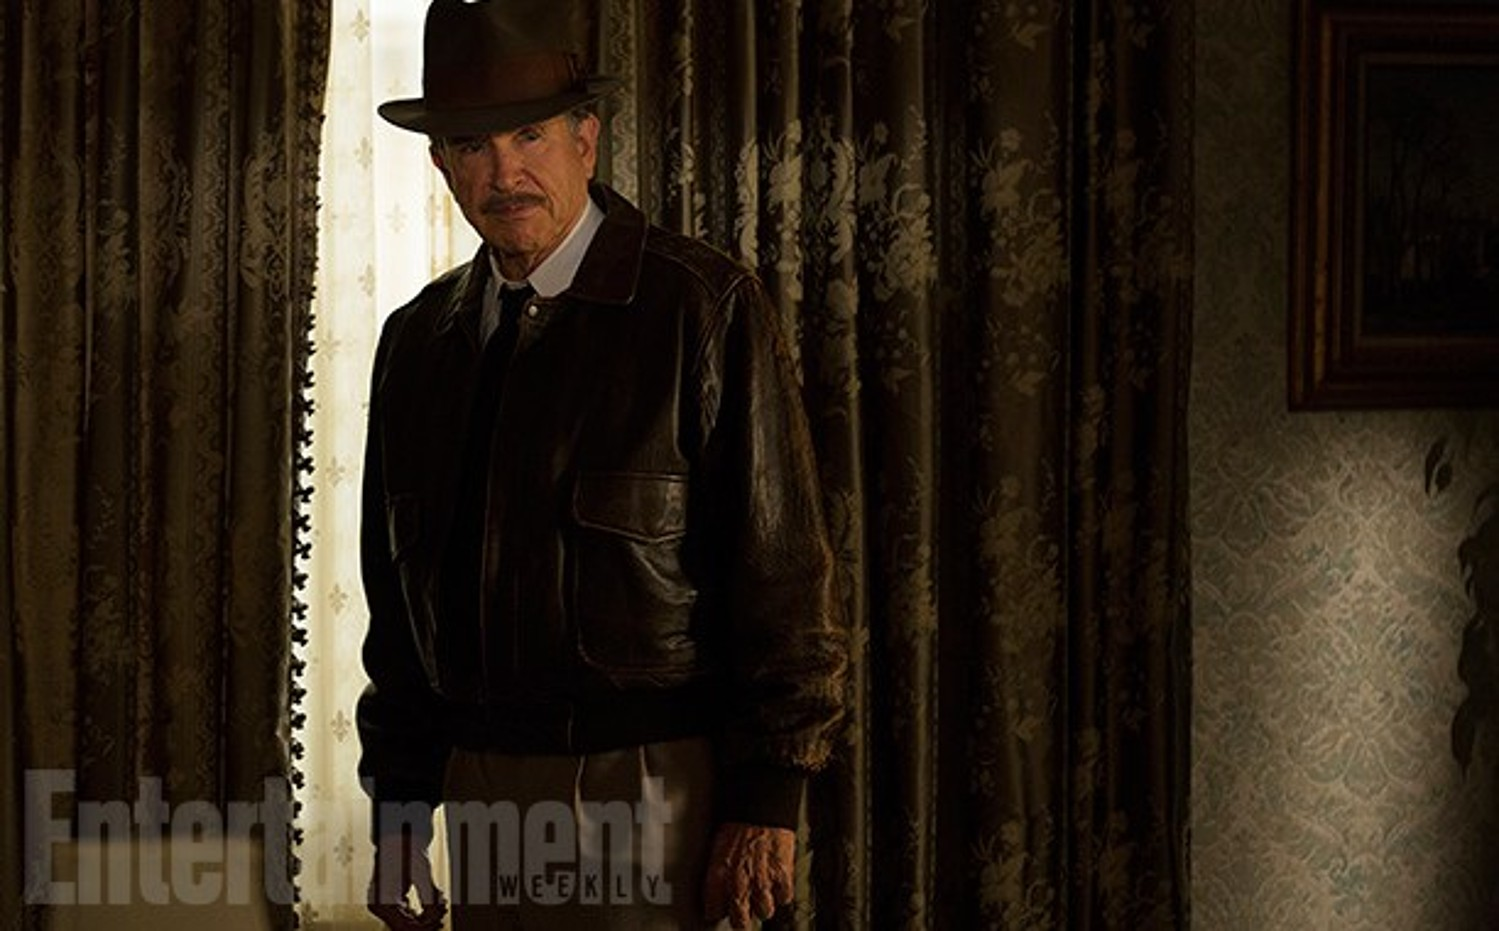 First Look at Warren Beatty's 'Rules Don't Apply'.